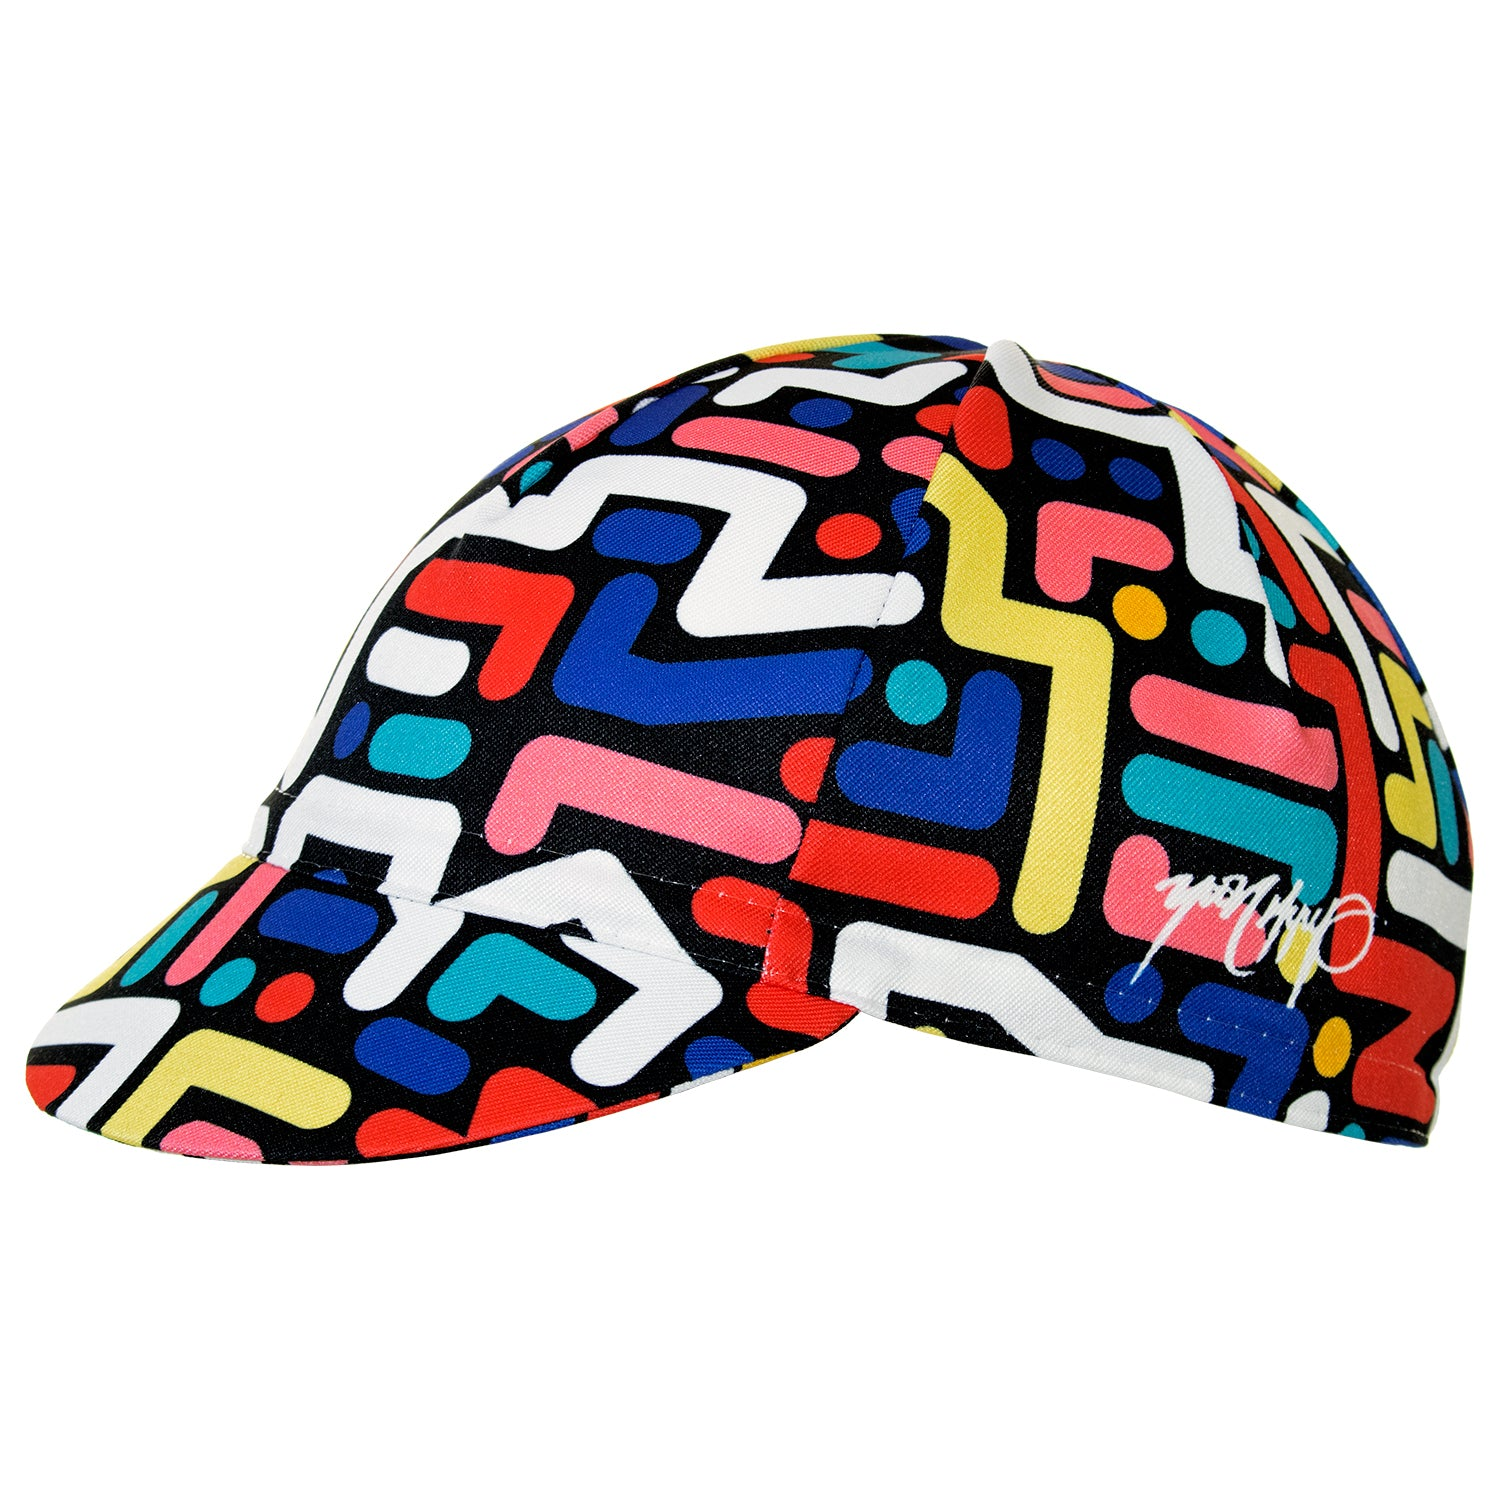 Cinelli City Lights Cycling Cap